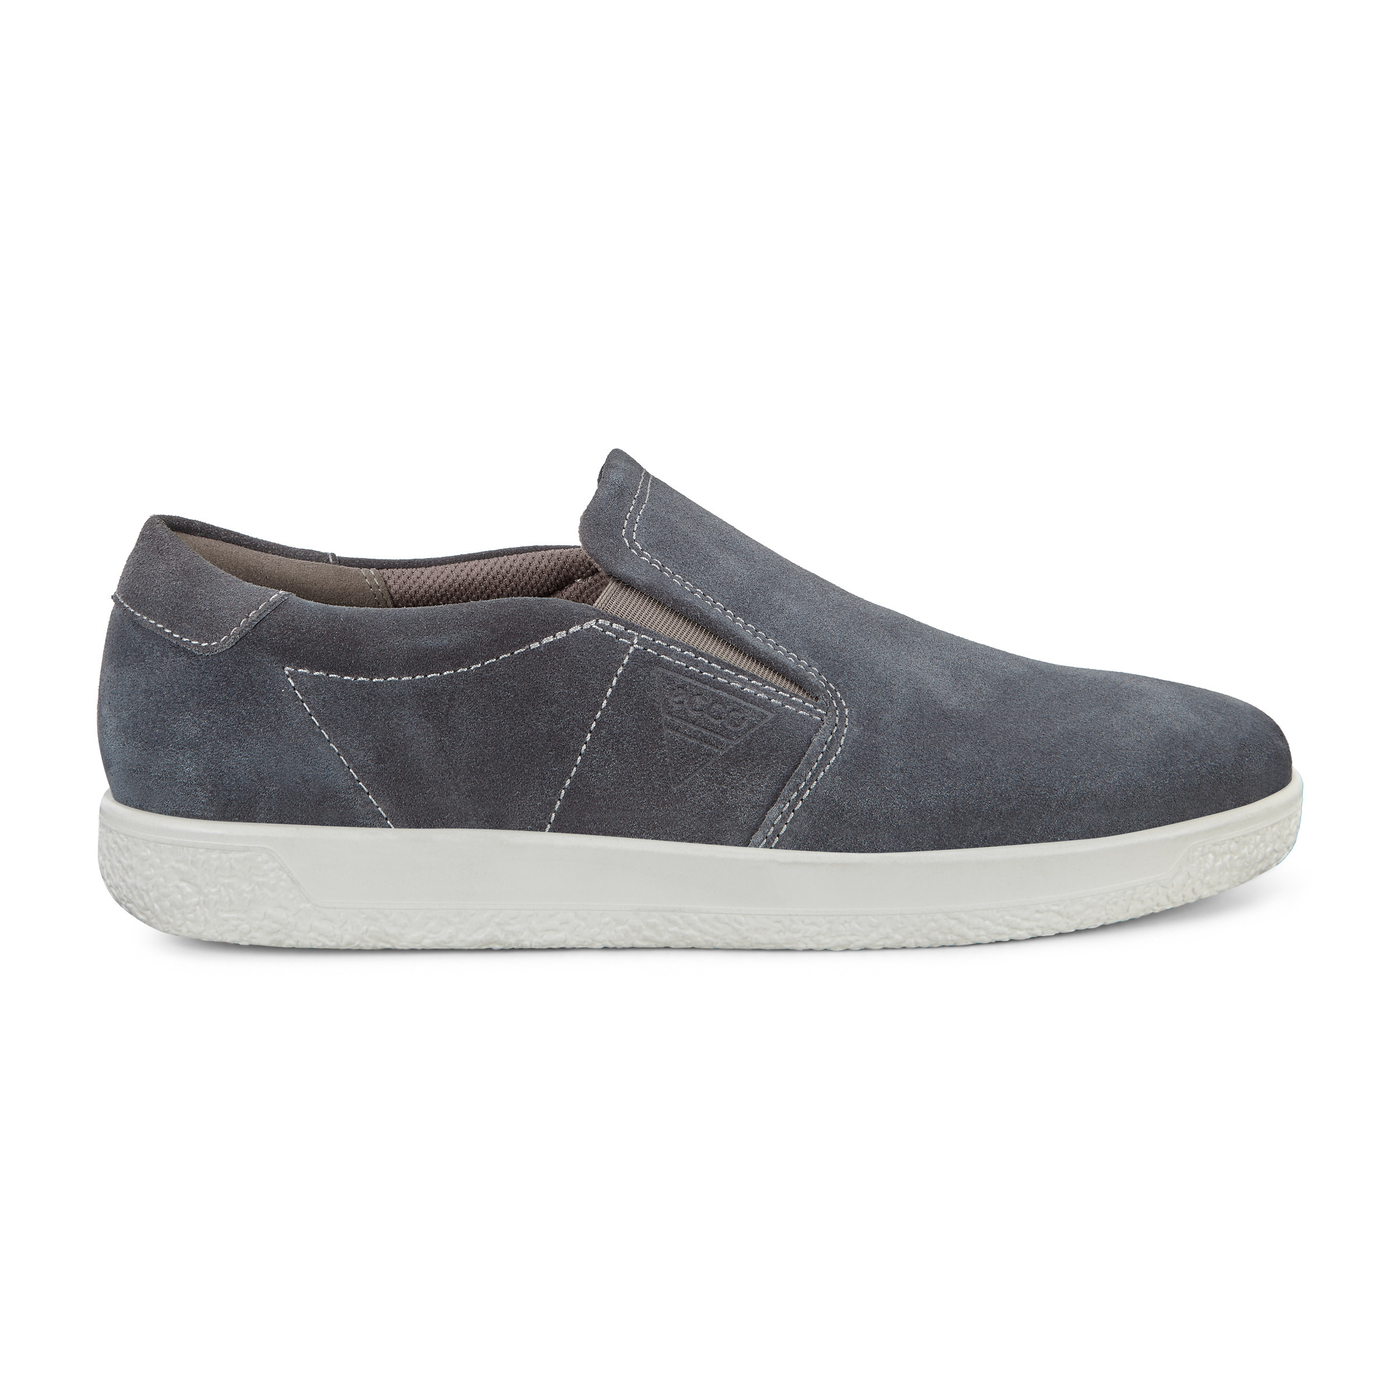 ECCO Mens Soft 1 Slip On